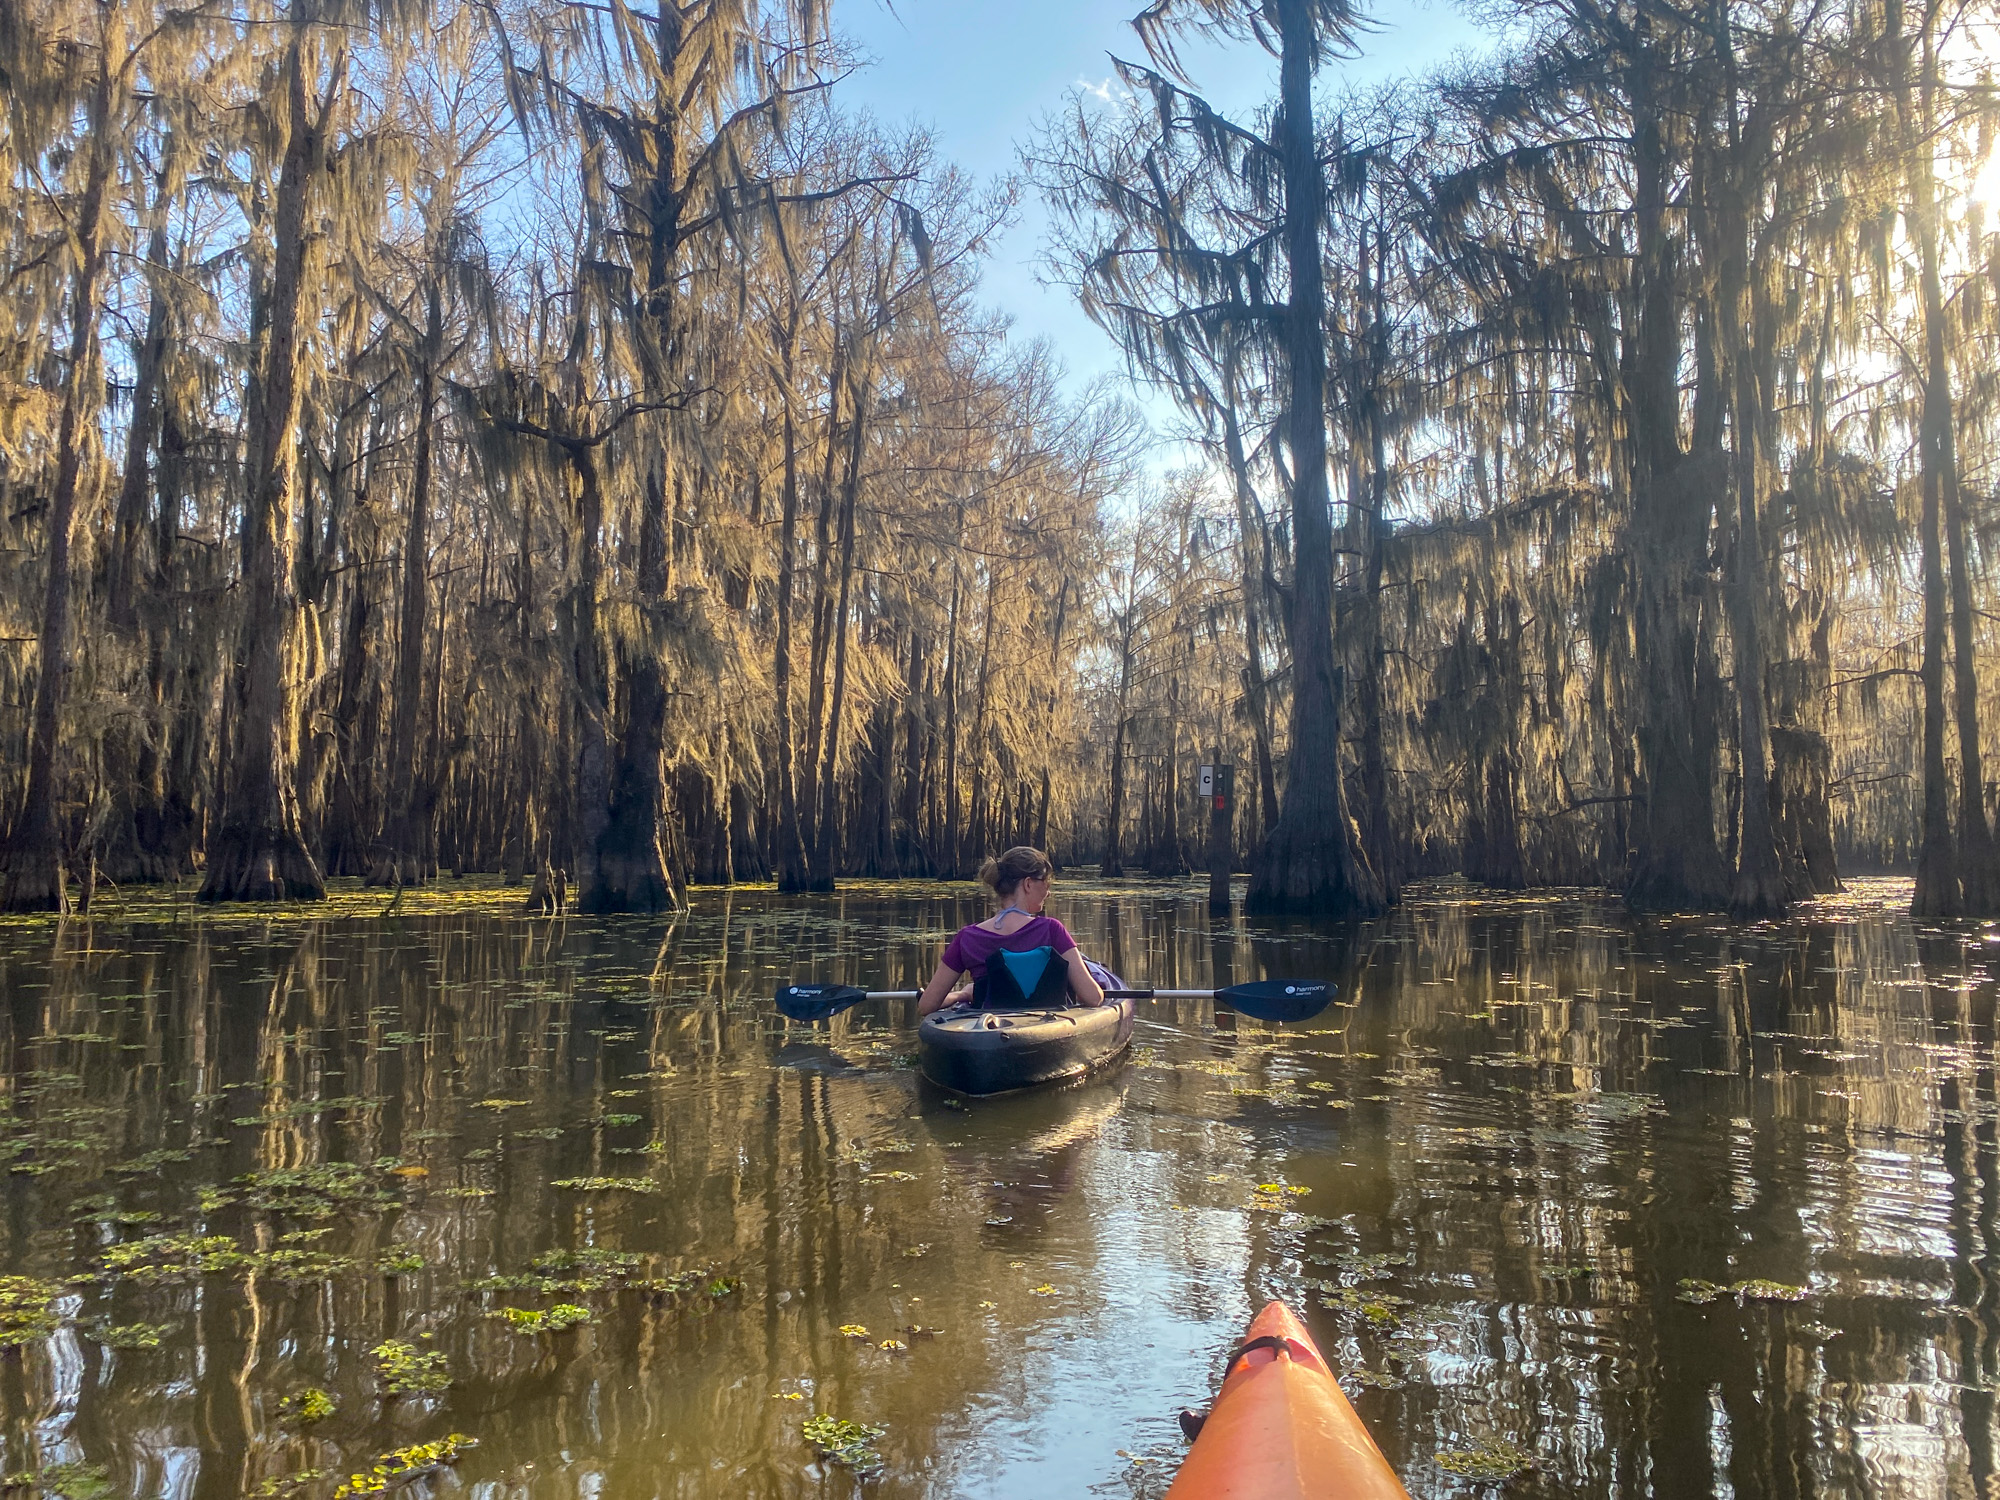 A woman kayaks on Hell's Half Acre Paddling Trail